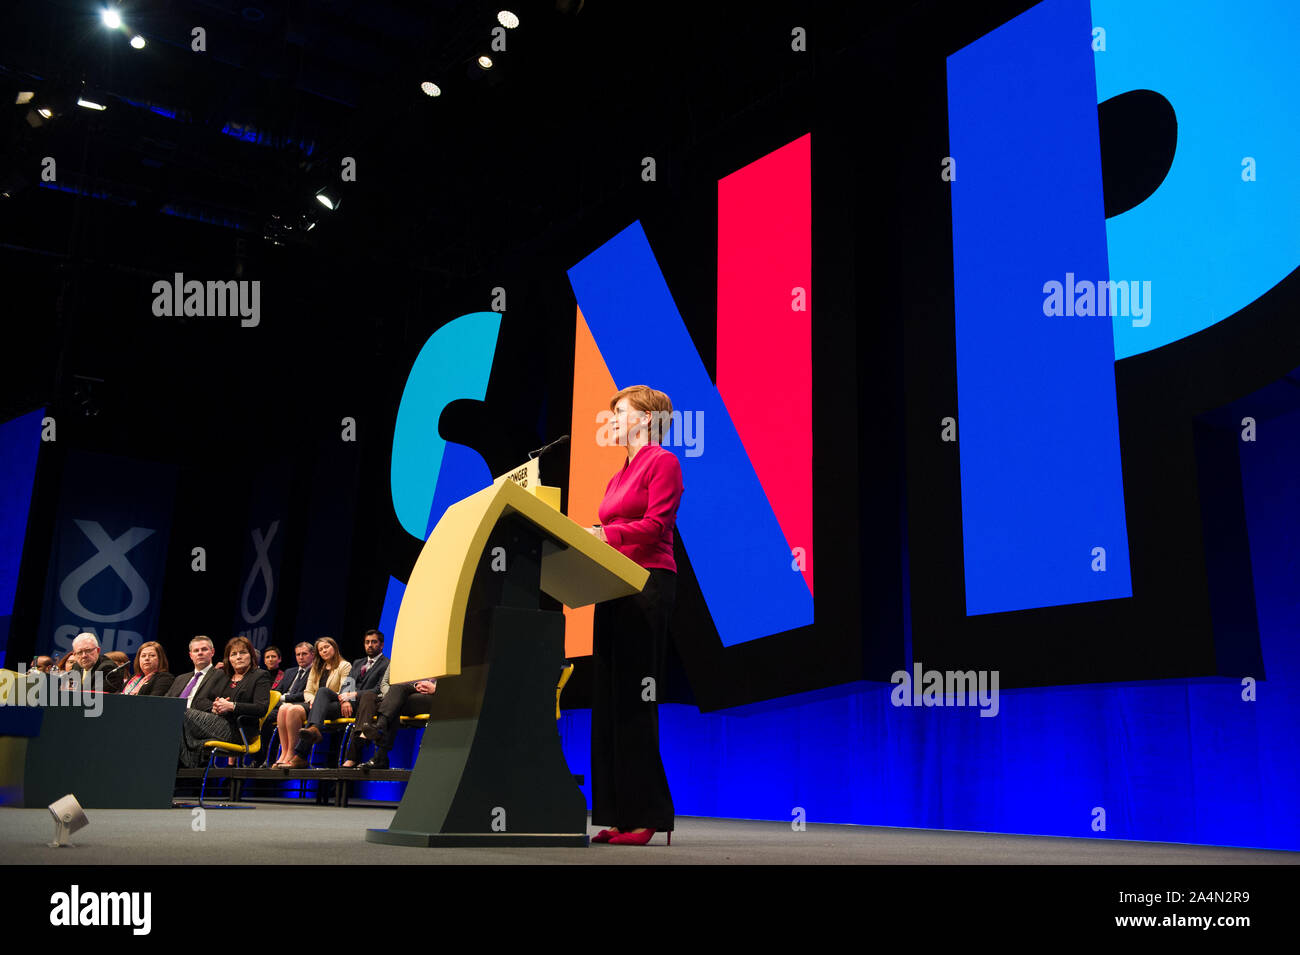 Aberdeen, UK. 15 October 2019.  Pictured: Nicola Sturgeon - First Minister of Scotland and Leader of the Scottish National Party (SNP) delivers her keynote speech on getting Scottish Independence to close the Scottish National Party Conference, Aberdeen, UK. The Event Complex Aberdeen (TECA). Credit: Colin Fisher/Alamy Live News Stock Photo